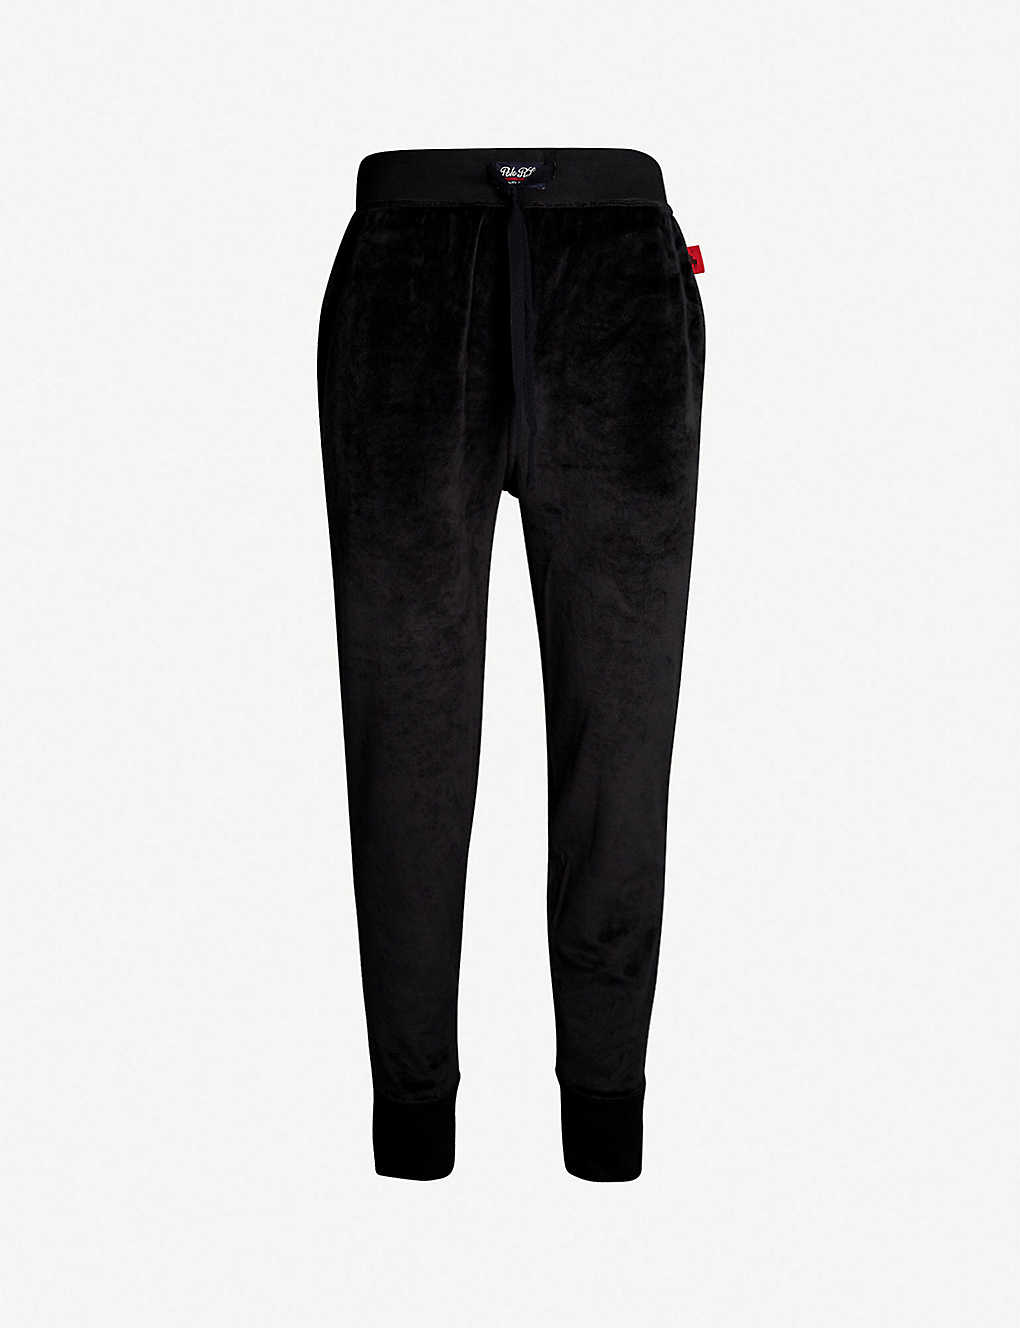 POLO RALPH LAUREN - Tapered velour jogging bottoms   Selfridges.com 778c0cfb8d2